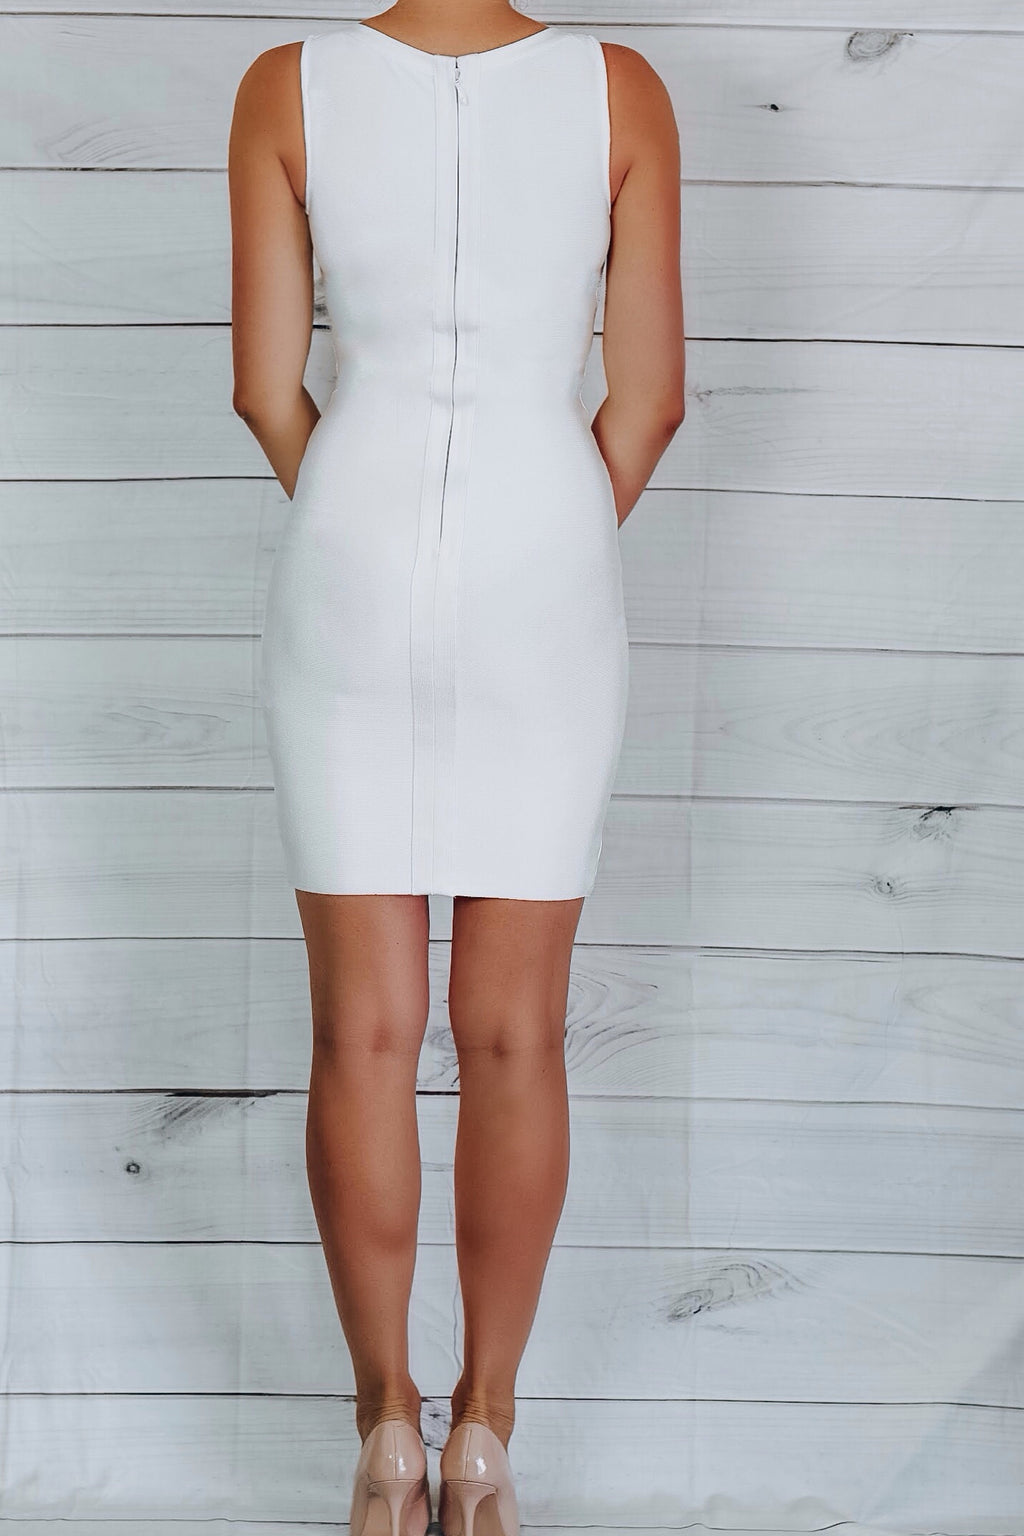 Star Lace-Up Bandage Dress - White